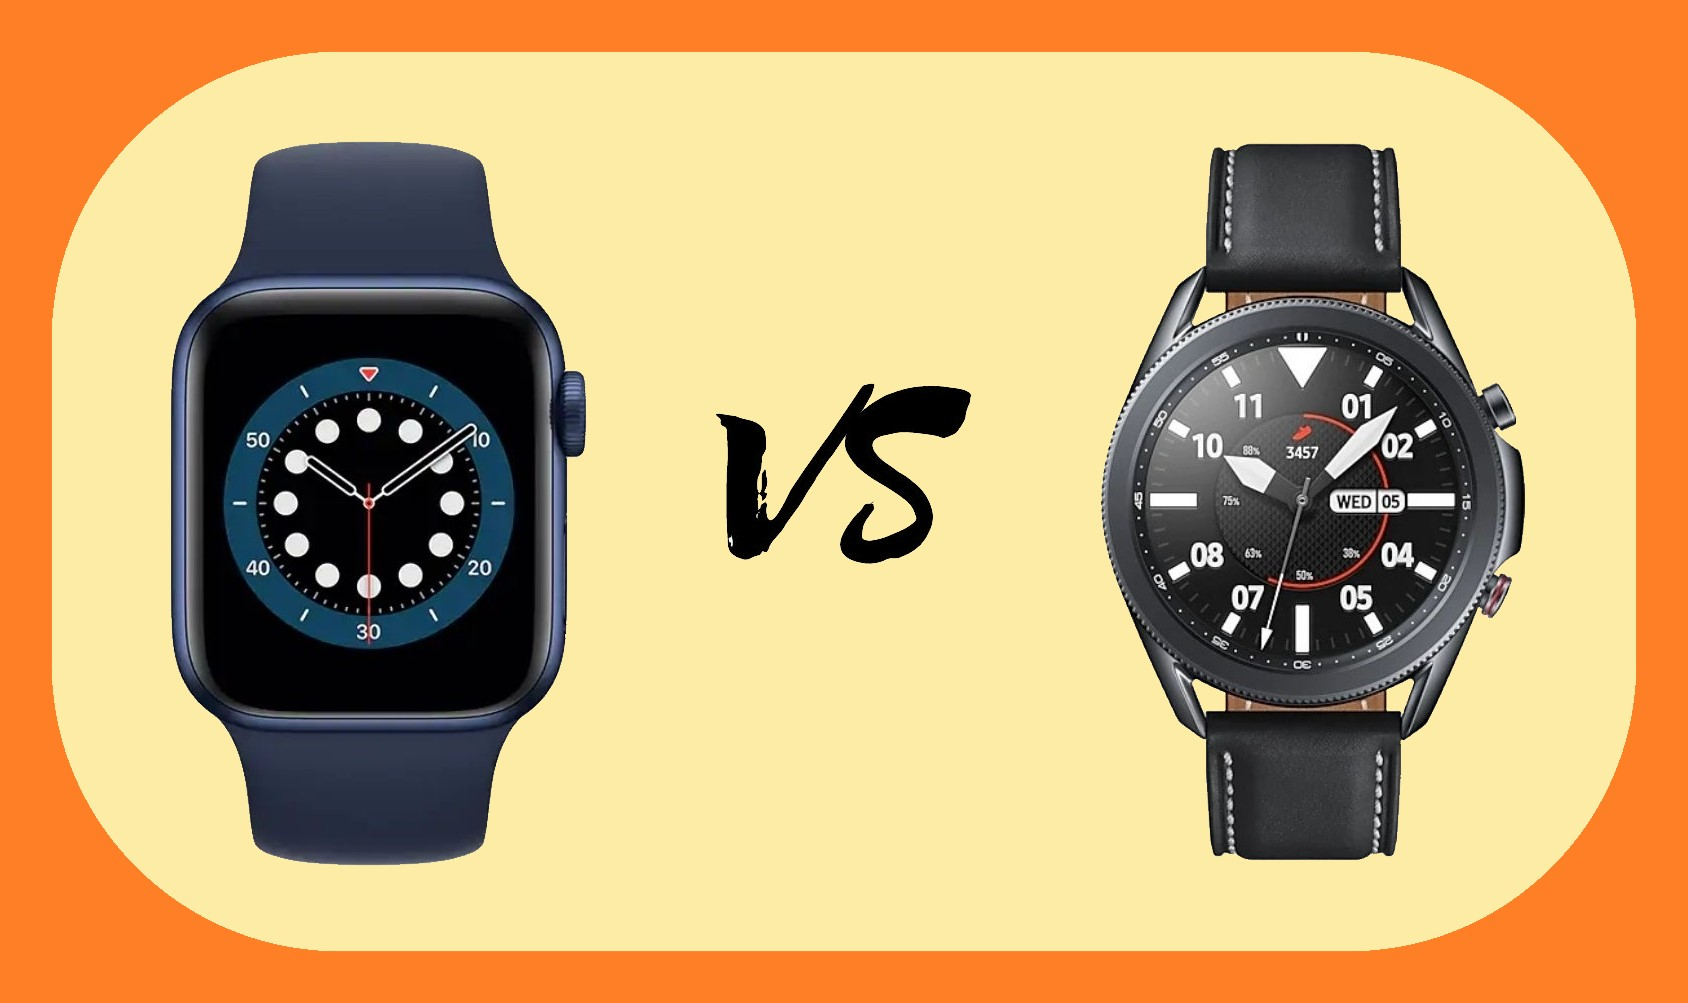 Apple Watch Series 6 vs Samsung Galaxy Watch 3